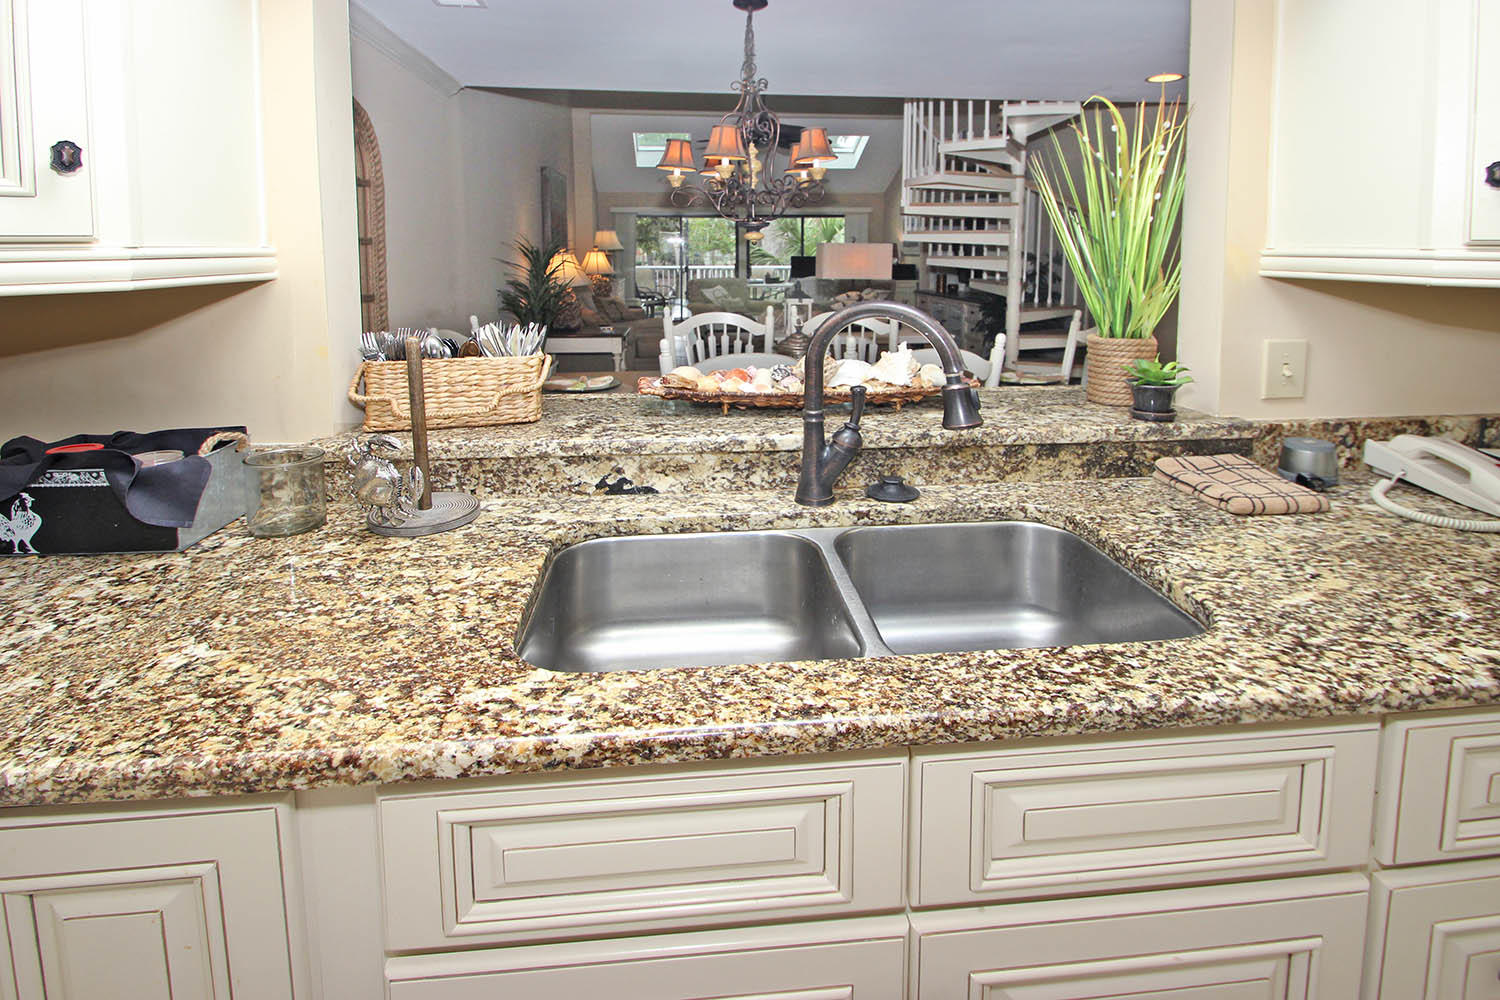 Kitchen pass-through to dining and living areas